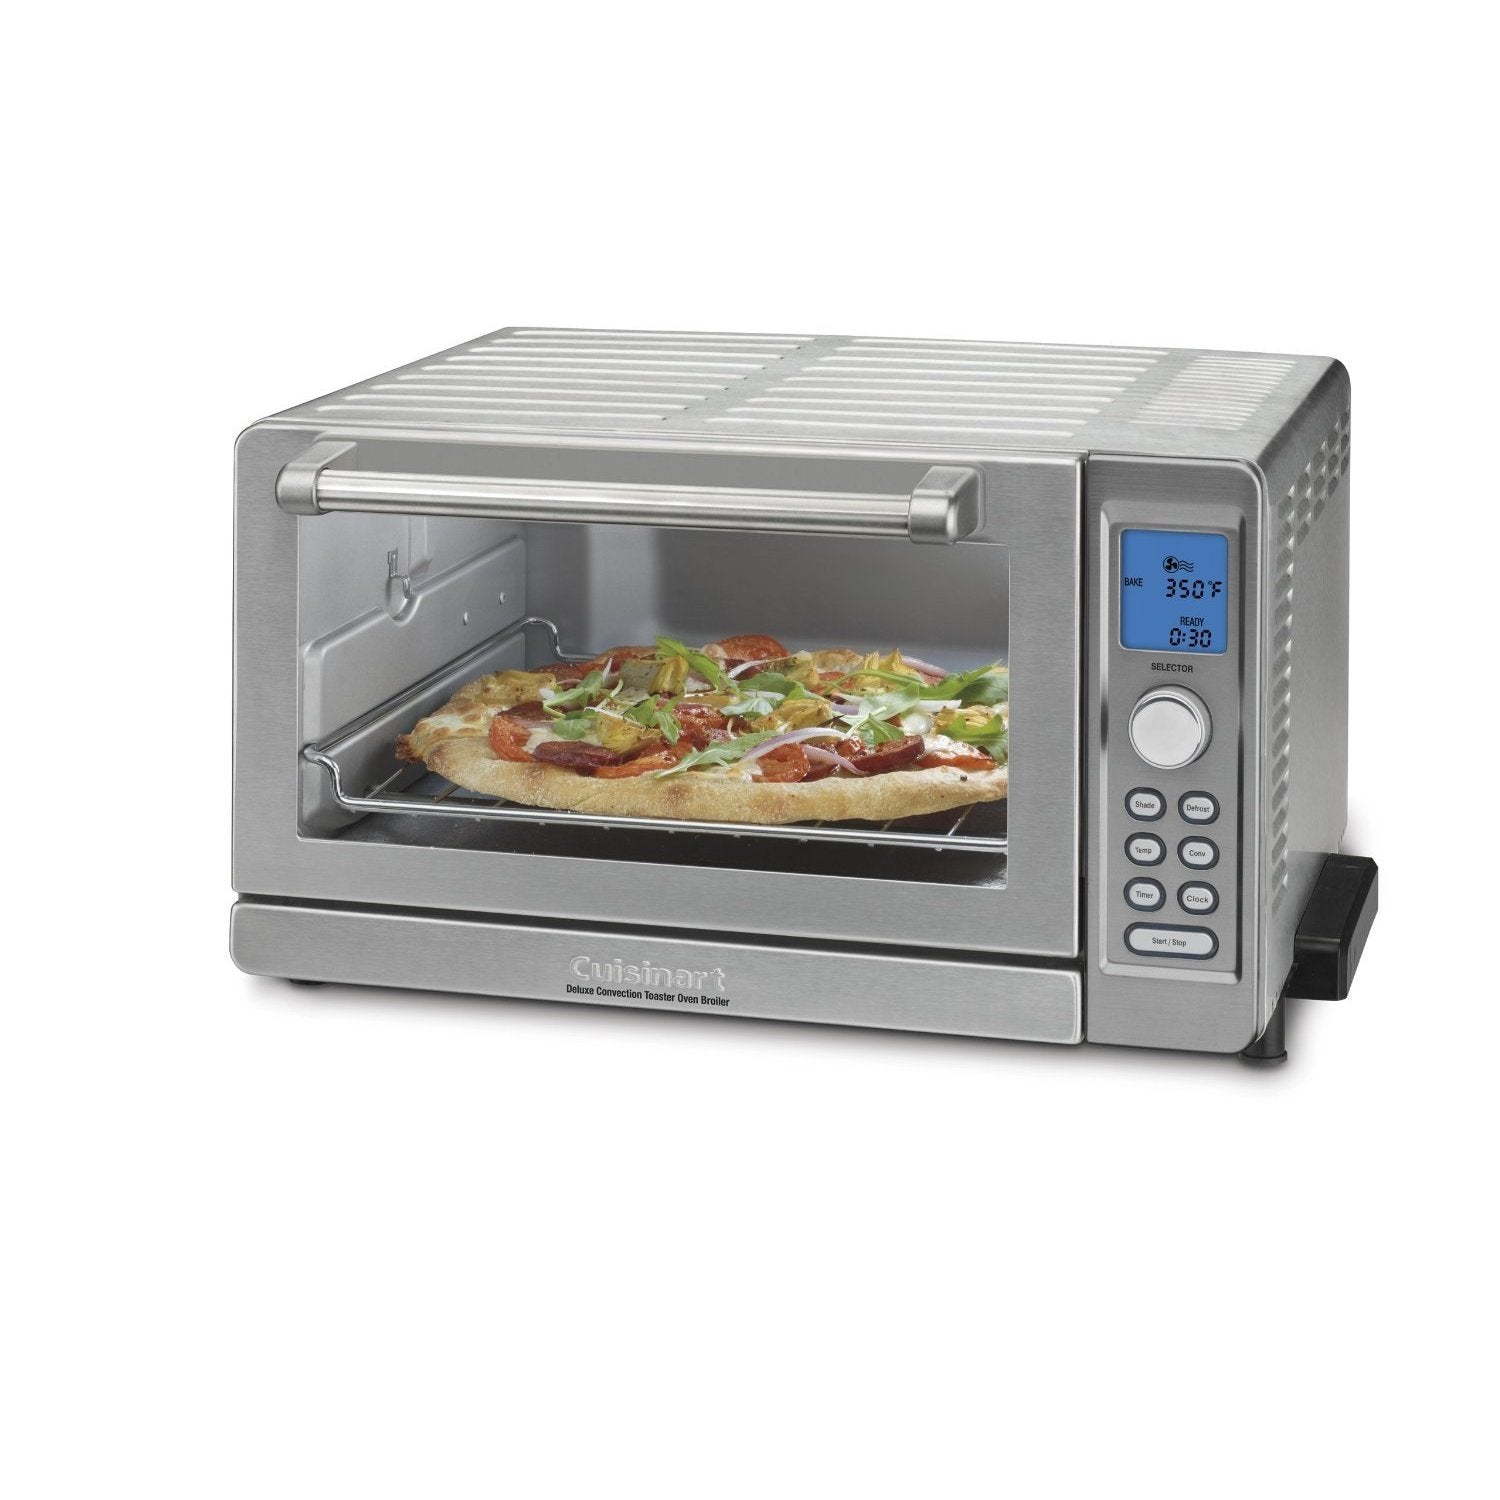 have sale cuisinart convection toaster costco walmart experience bread broiler kitchen ovens oven toasting with excellent an to target on at